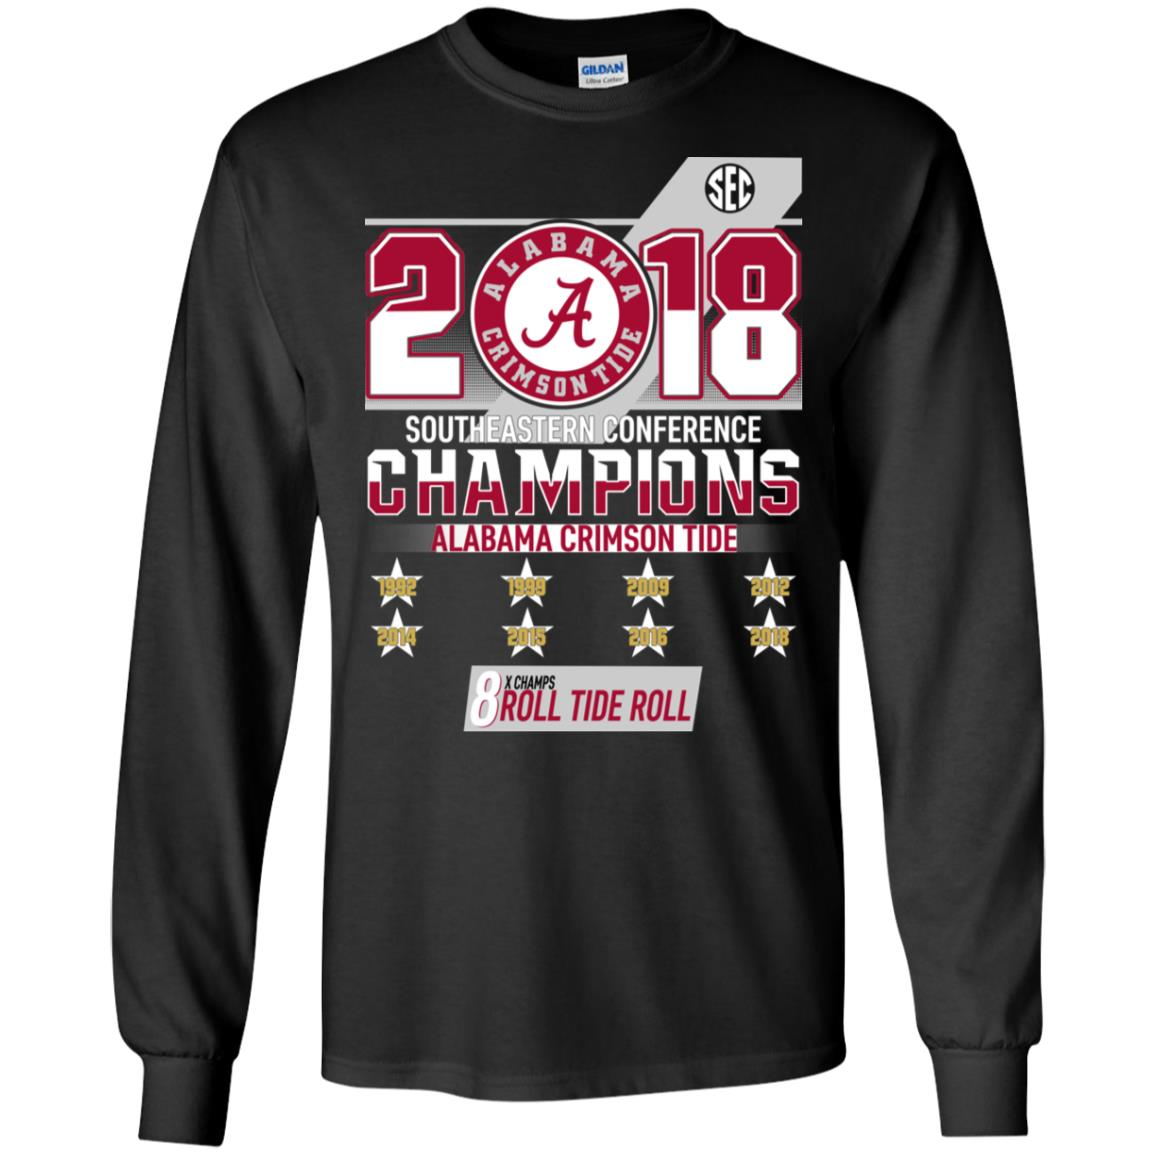 7be9ee434 Alabama Crimson Tide 2018 Southeastern Conference Champions T shirt, Ls,  Sweatshirt